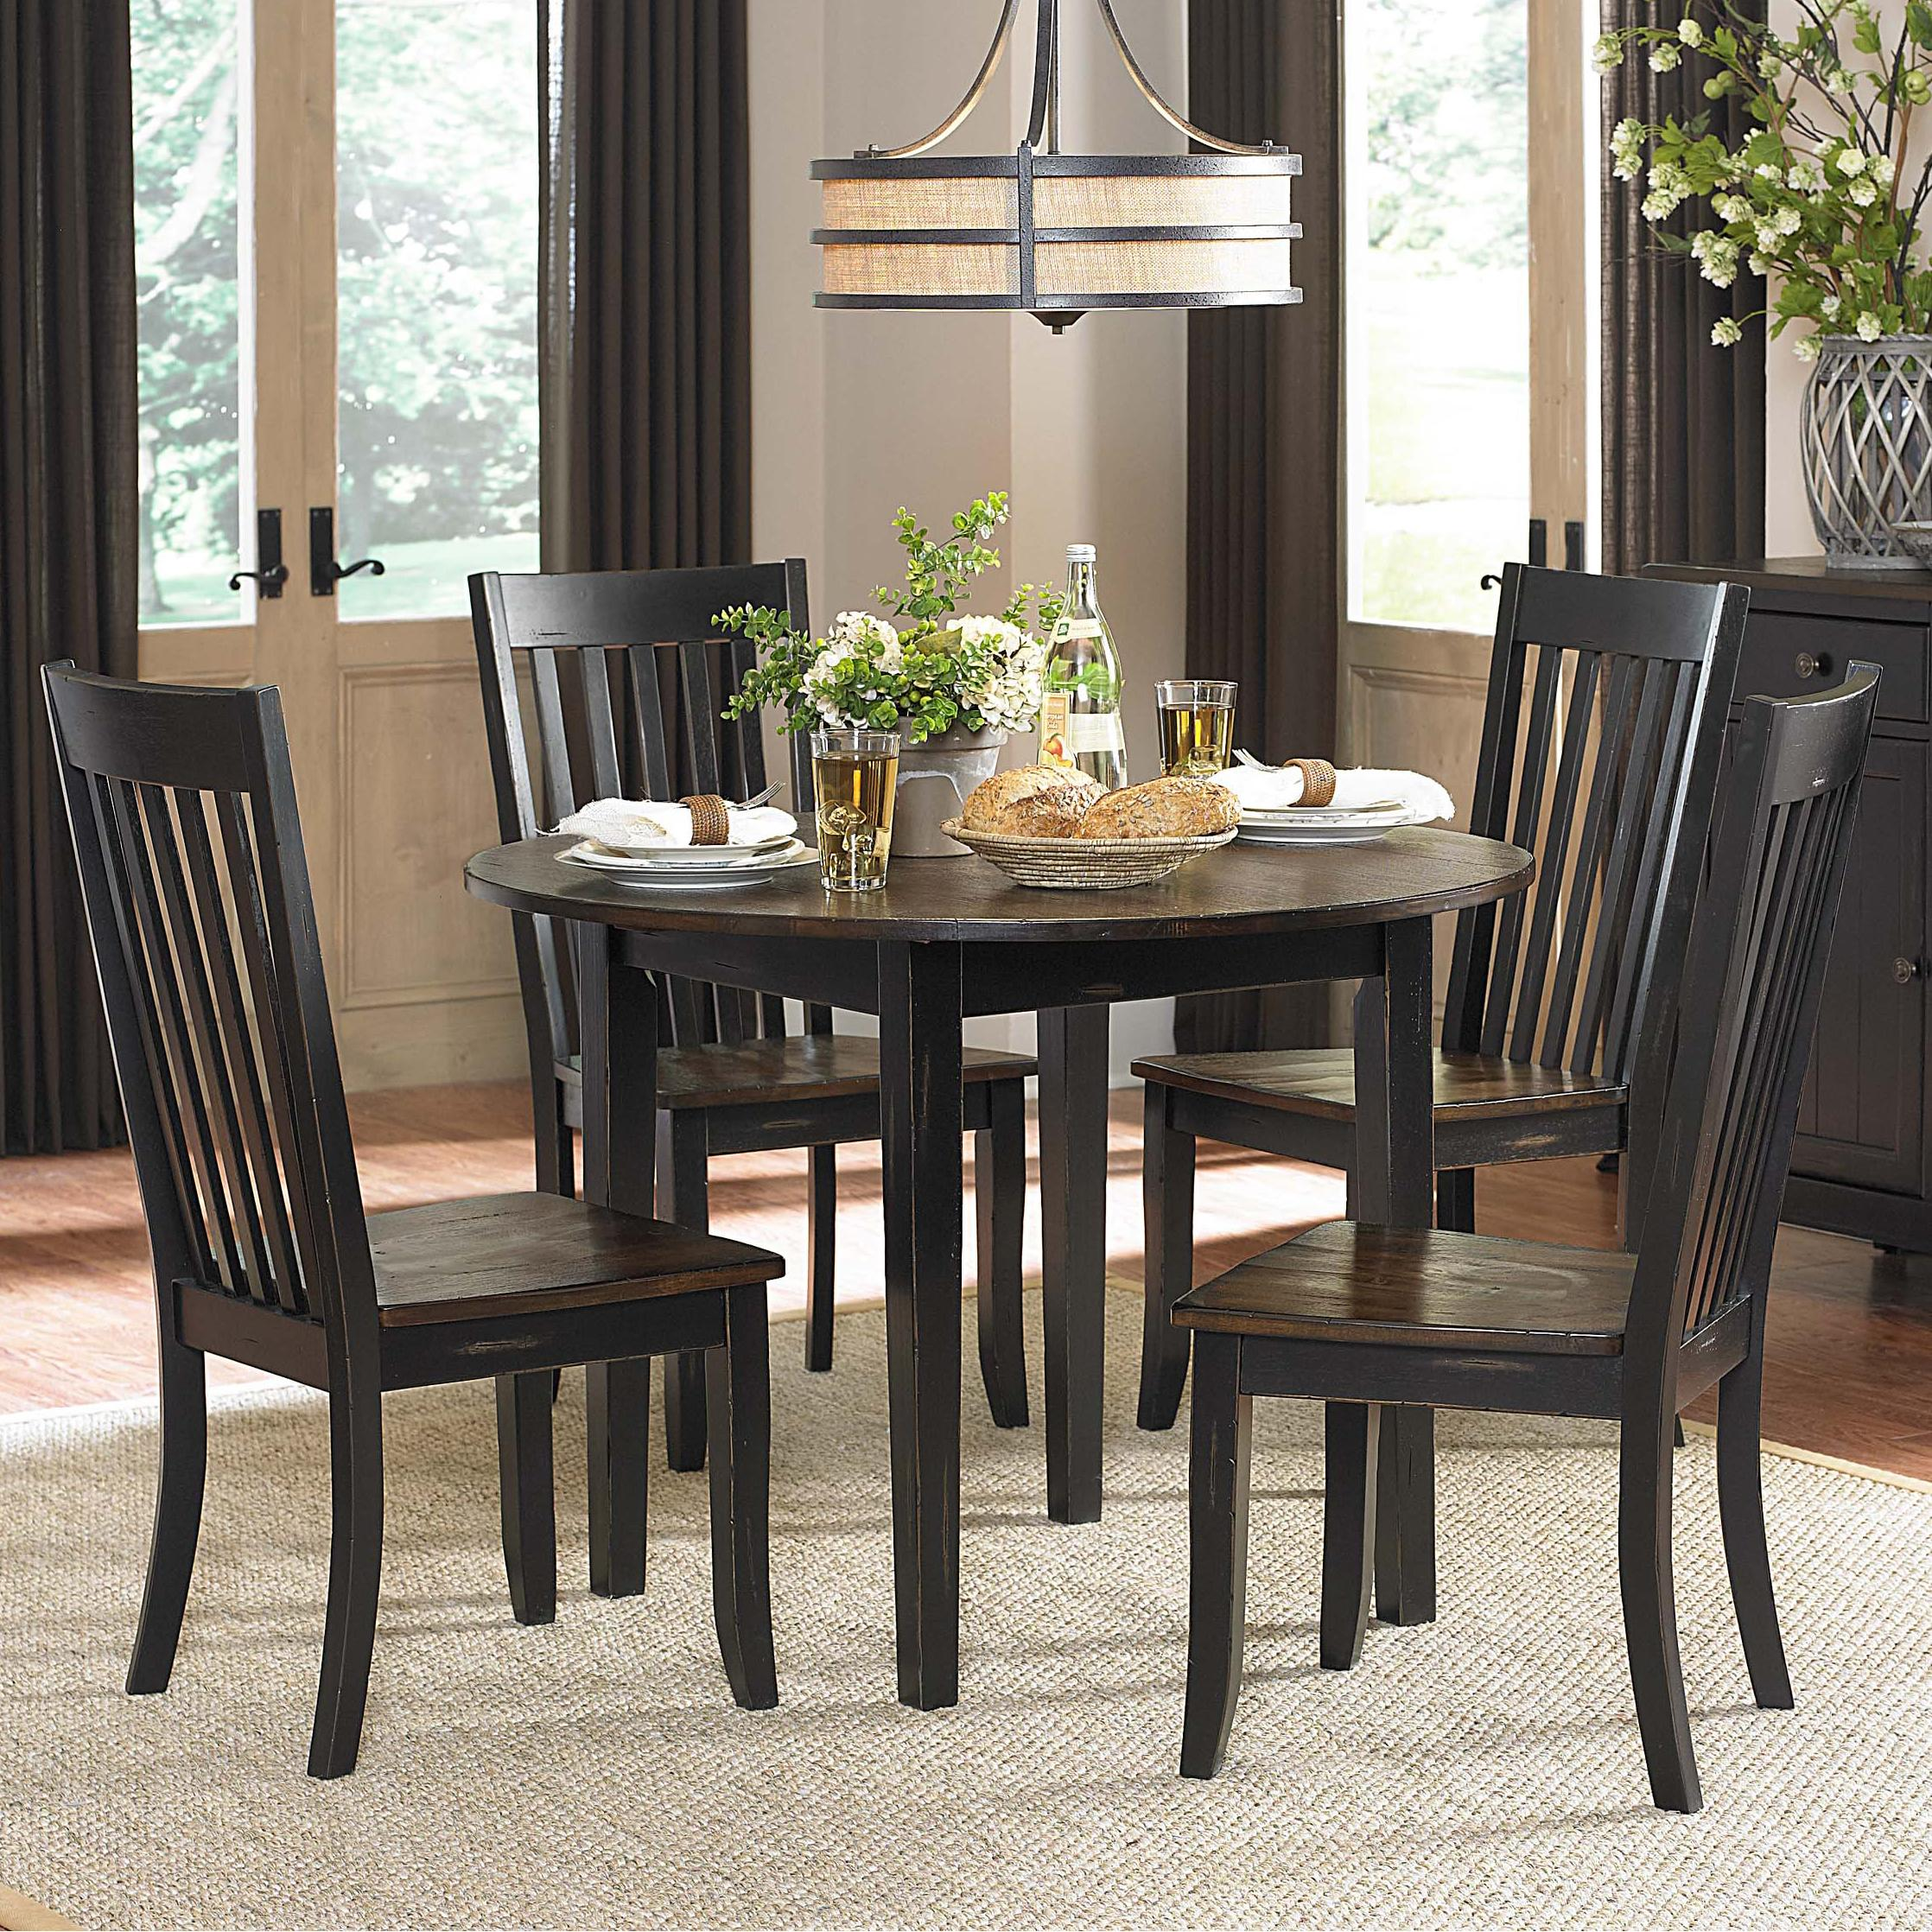 Homelegance Three Falls 5 Piece Dining Set - Item Number: 5023-42+4xS